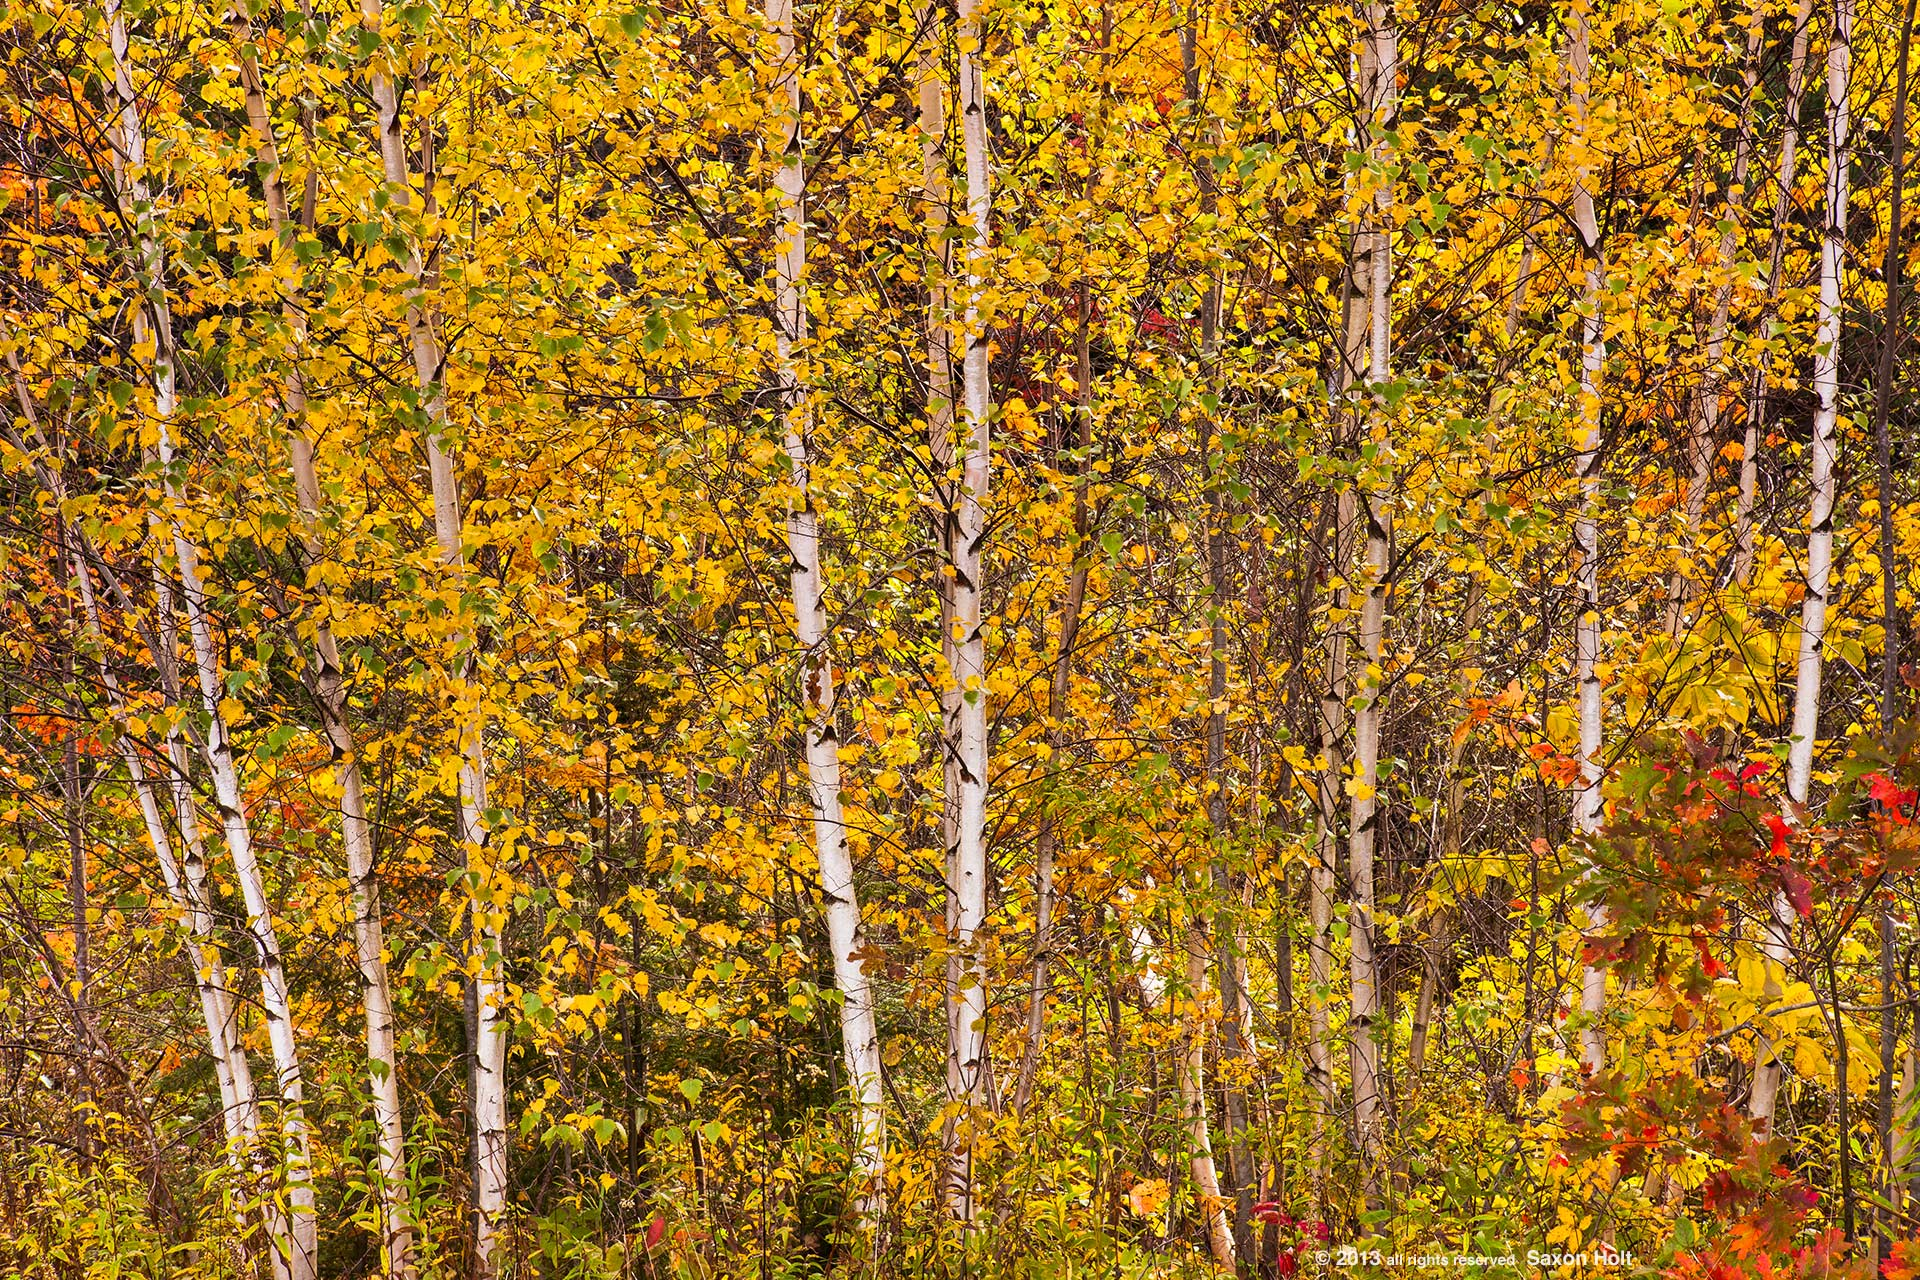 Tapestry of trees in fall color at Knapp Pond, Knapp Brook Wildlife Area, autumn in Vermont